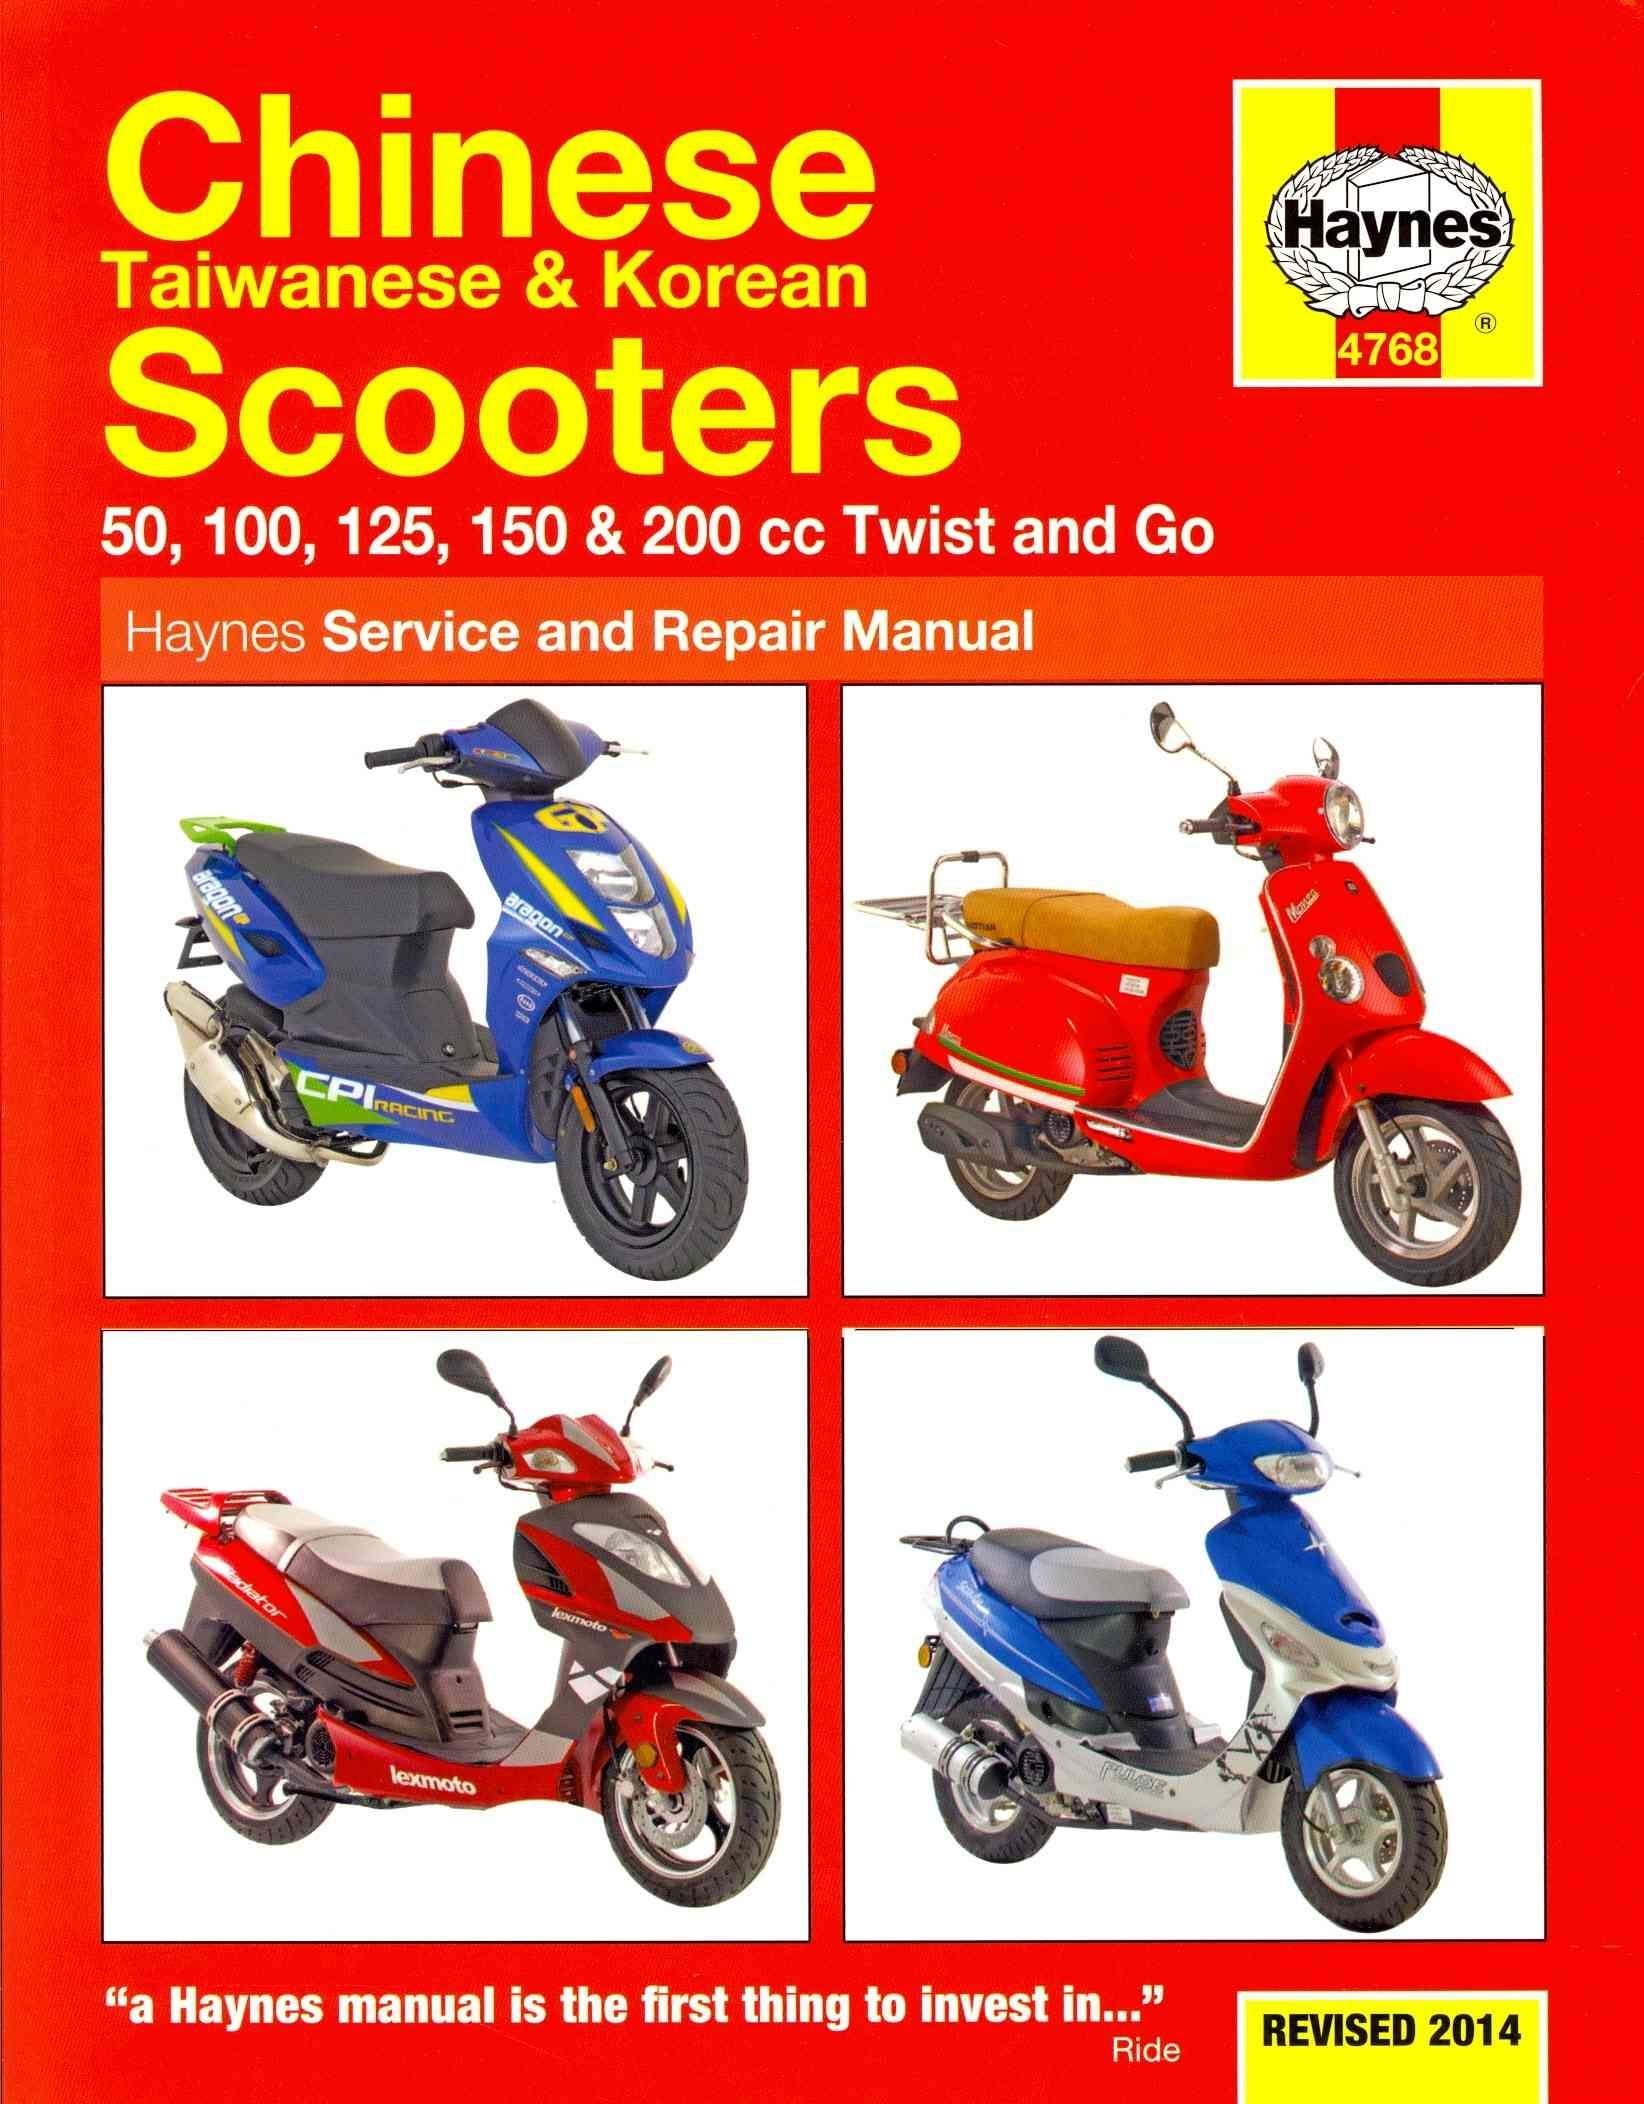 Haynes Chinese Taiwanese & Korean Scooters: 50, 100, 125, 150 & 200 CC  Twist and Go